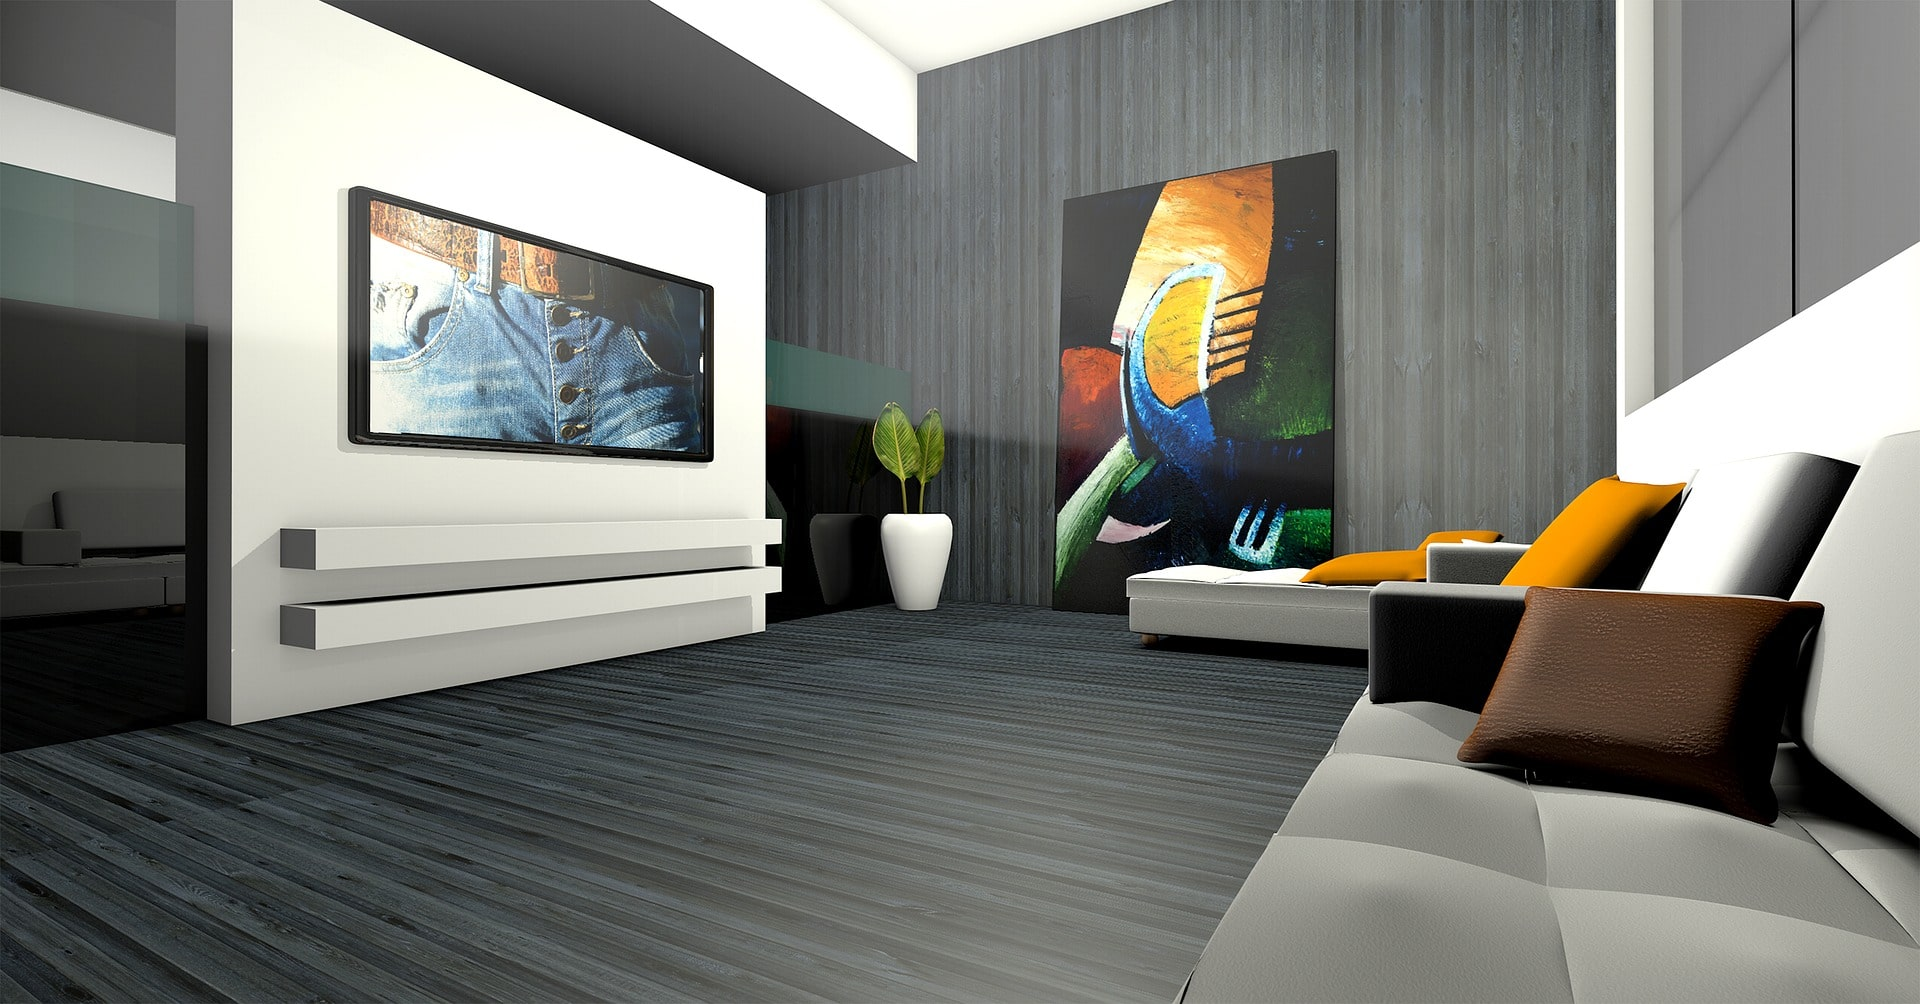 3 Tips For Decorating A Creative Workspace. Living Room Side Tables Modern. How To Decorate A Large Living Room With Fireplace. Badcock Living Room Sets. Round Sofa Living Room Furniture. Living Room Ceiling Fan Ideas. Living Room Styles. Upholstered Stools For Living Room. Large Living Room Layout With Fireplace